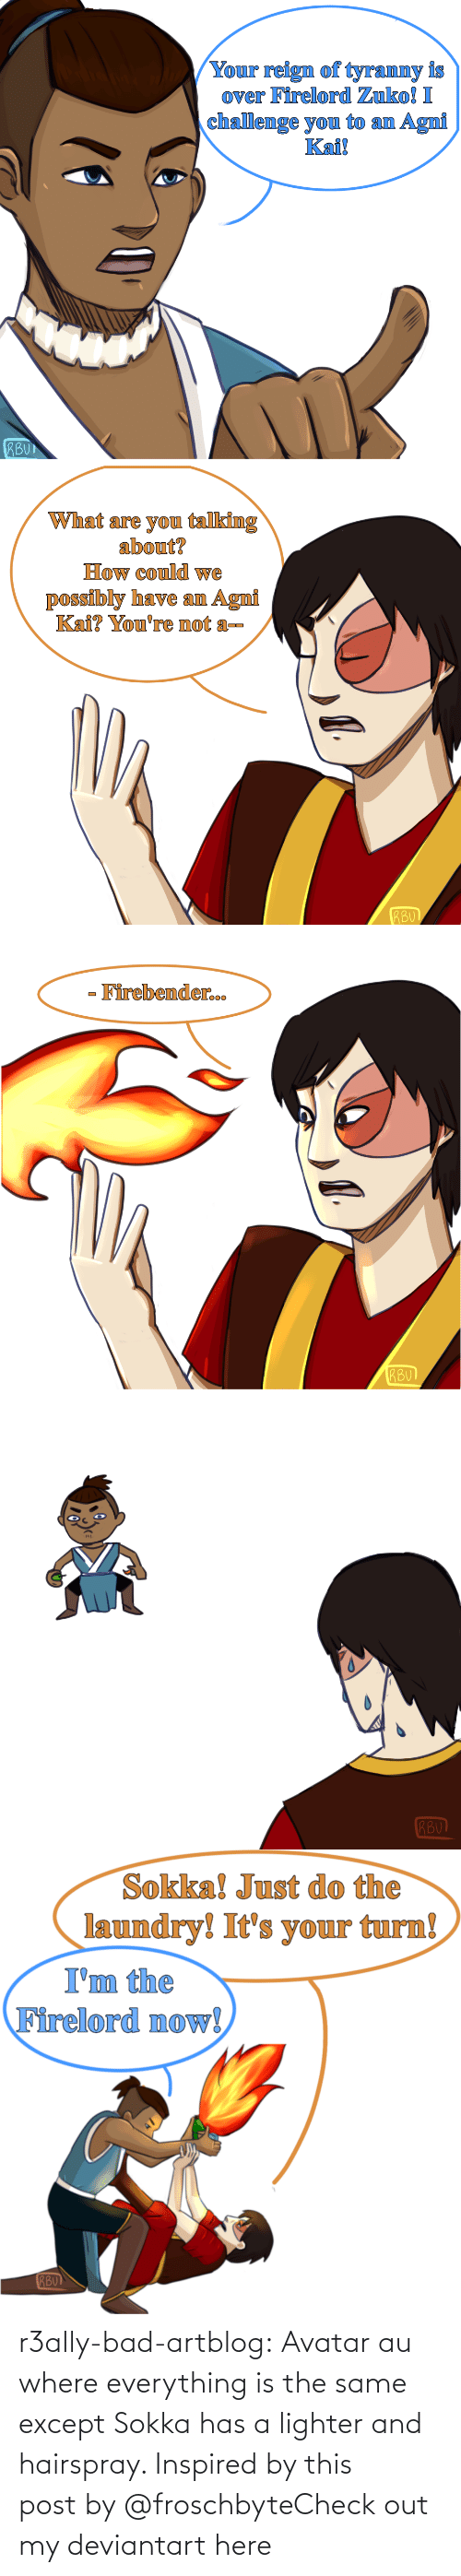 hands: r3ally-bad-artblog:  Avatar au where everything is the same except Sokka has a lighter and hairspray. Inspired by this post by @froschbyteCheck out my deviantart here